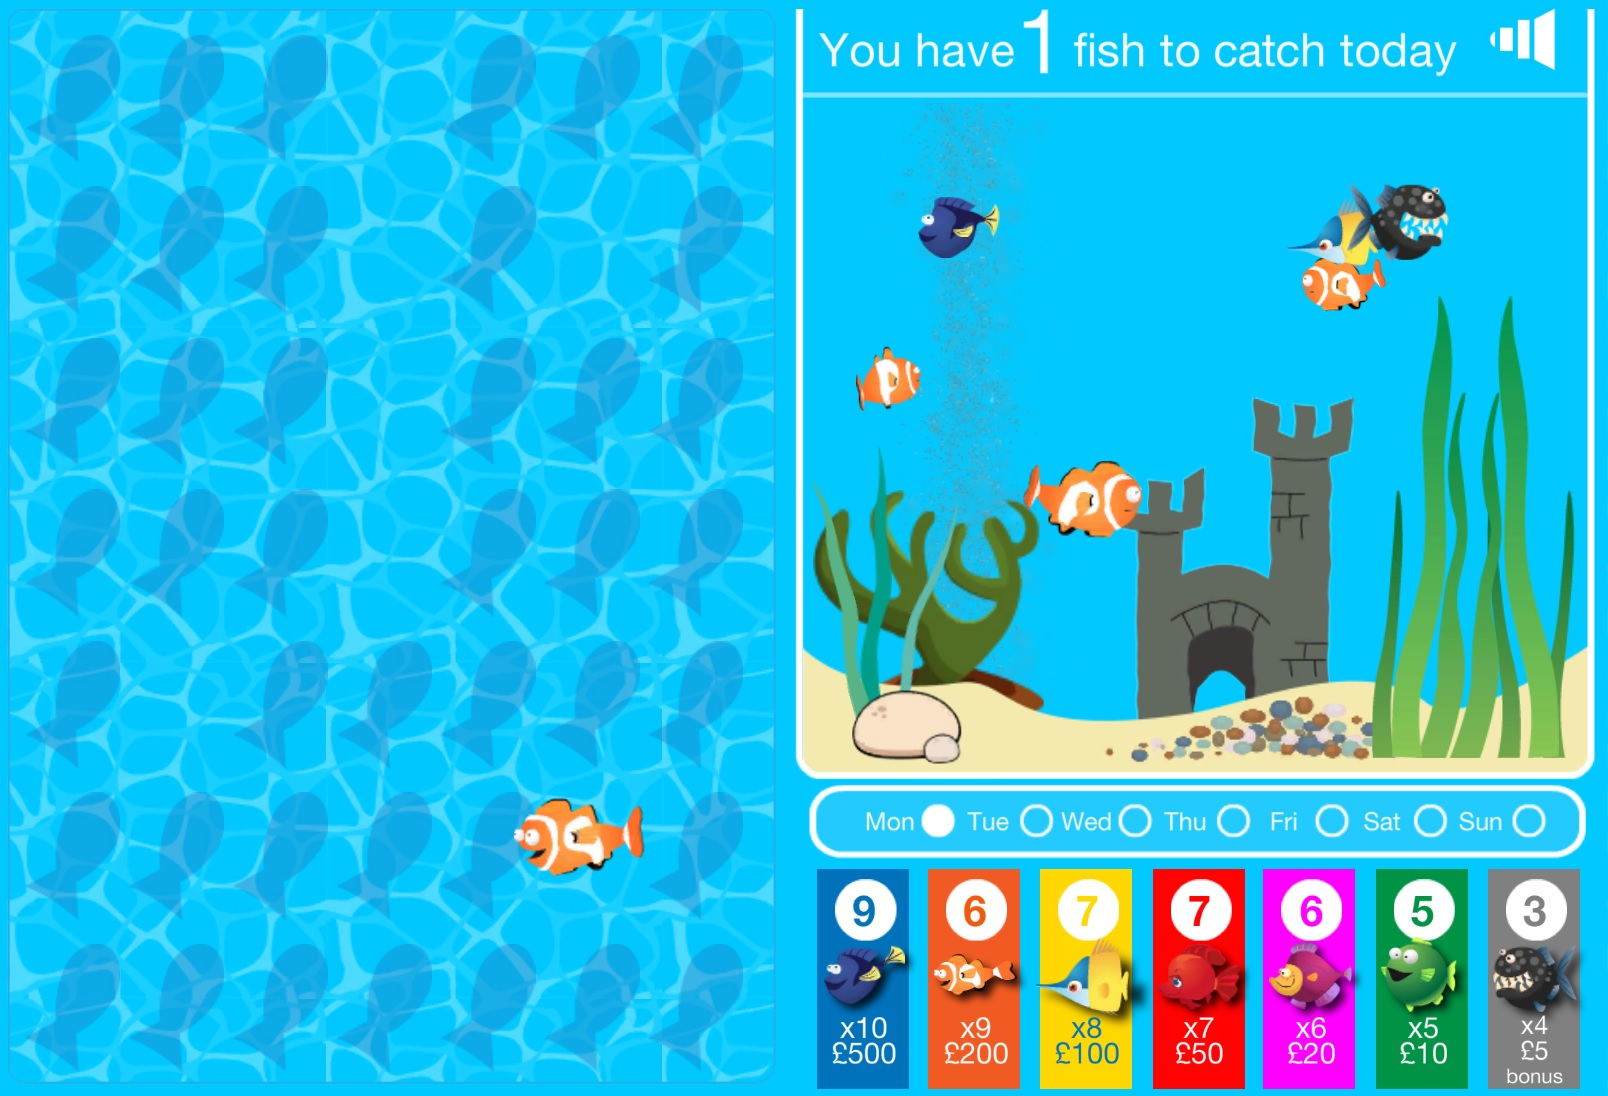 Go Fish - A free game from tombola